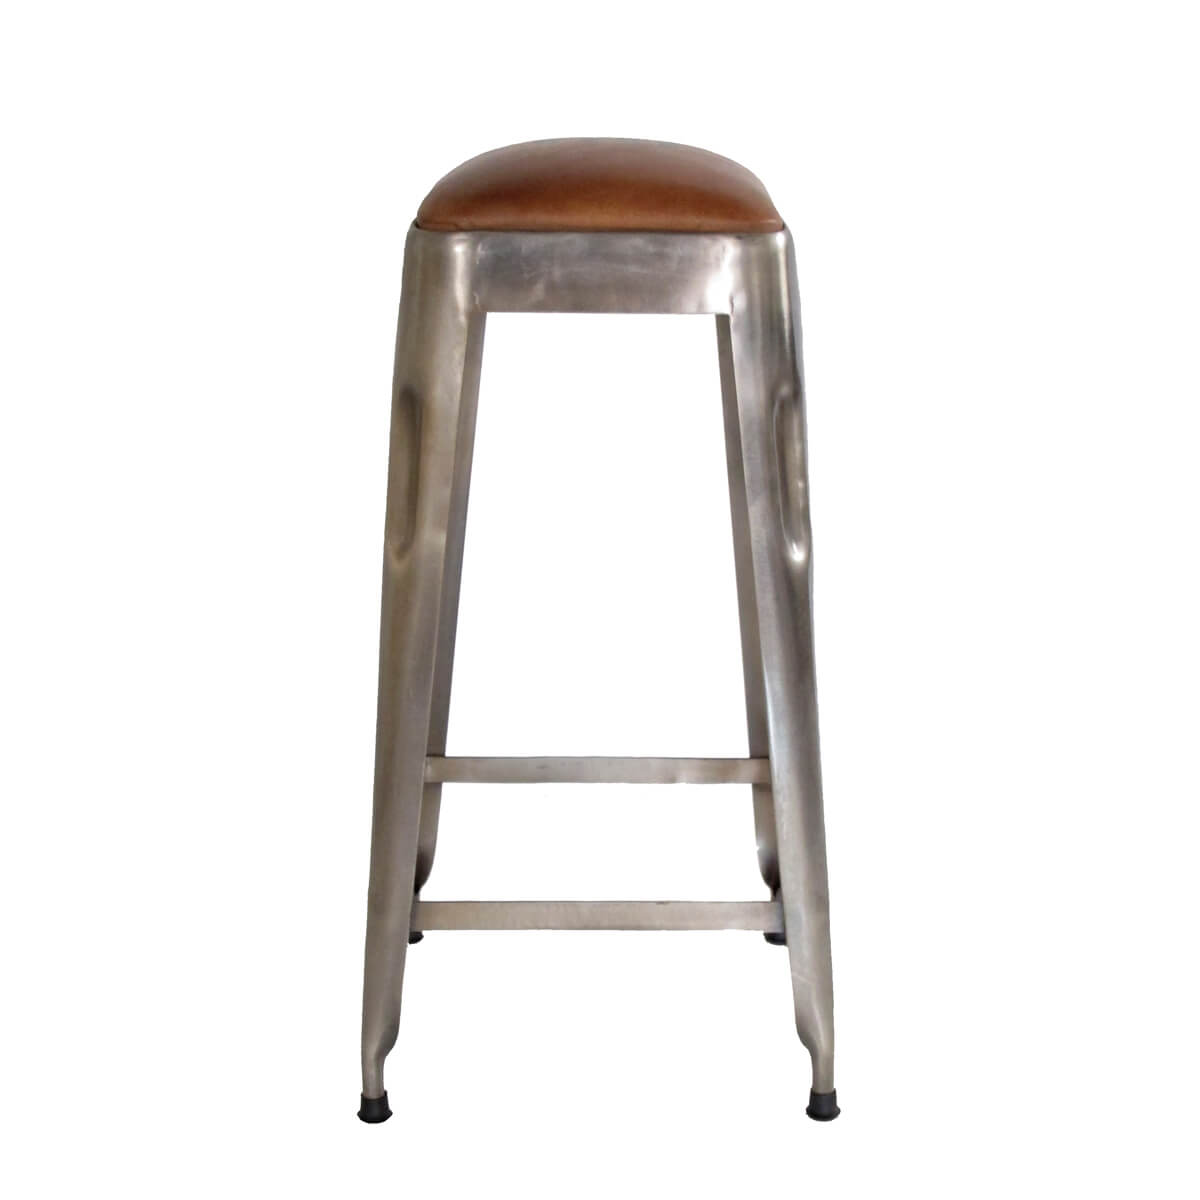 Astonishing Ironworks Counter Stool W Leather Top High Fashion Home Uwap Interior Chair Design Uwaporg